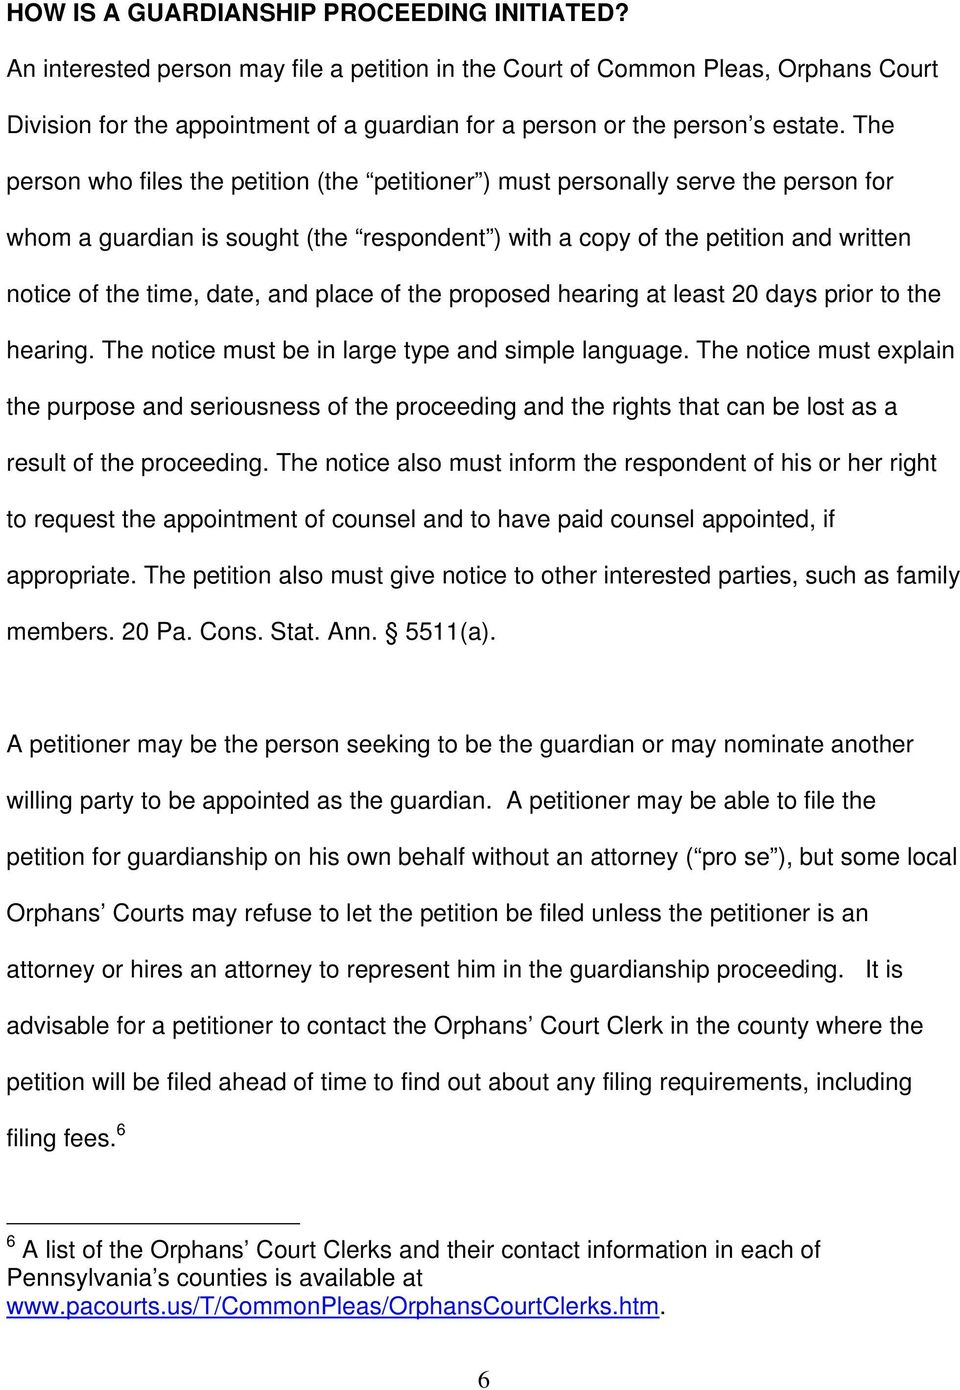 The person who files the petition (the petitioner ) must personally serve the person for whom a guardian is sought (the respondent ) with a copy of the petition and written notice of the time, date,